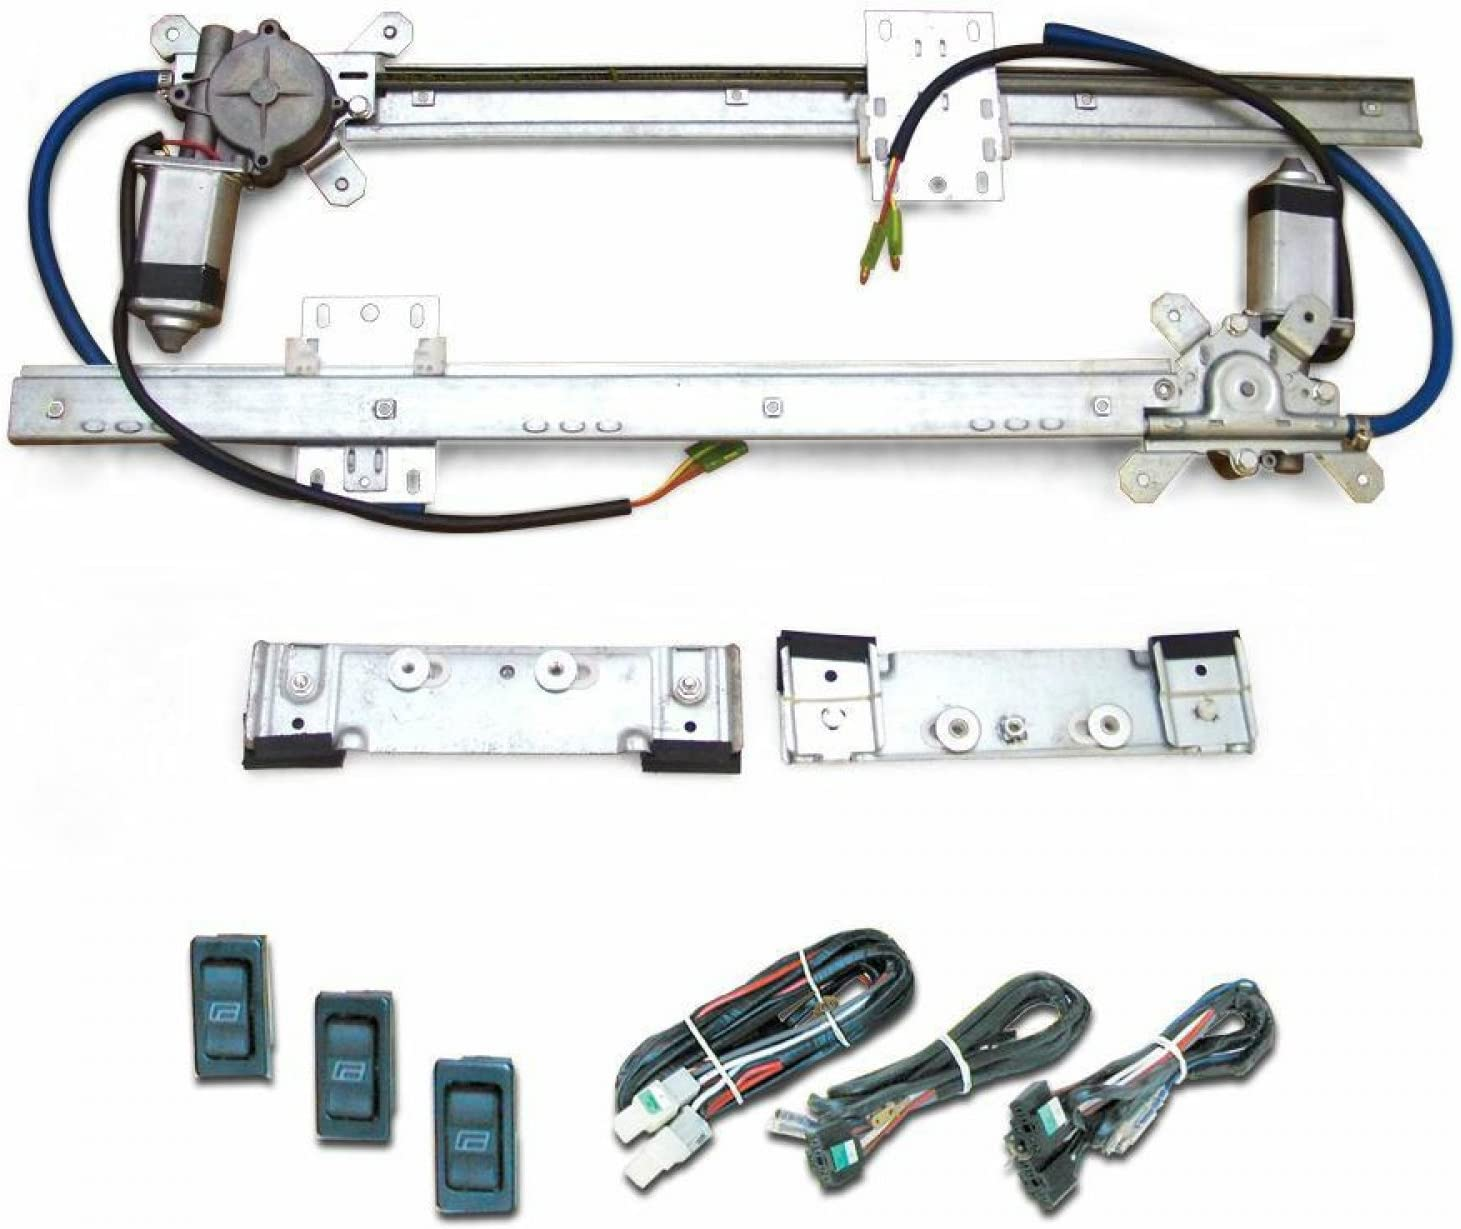 AutoLoc Power Accessories 9849 Flat Power Window Kit with 3 Switches